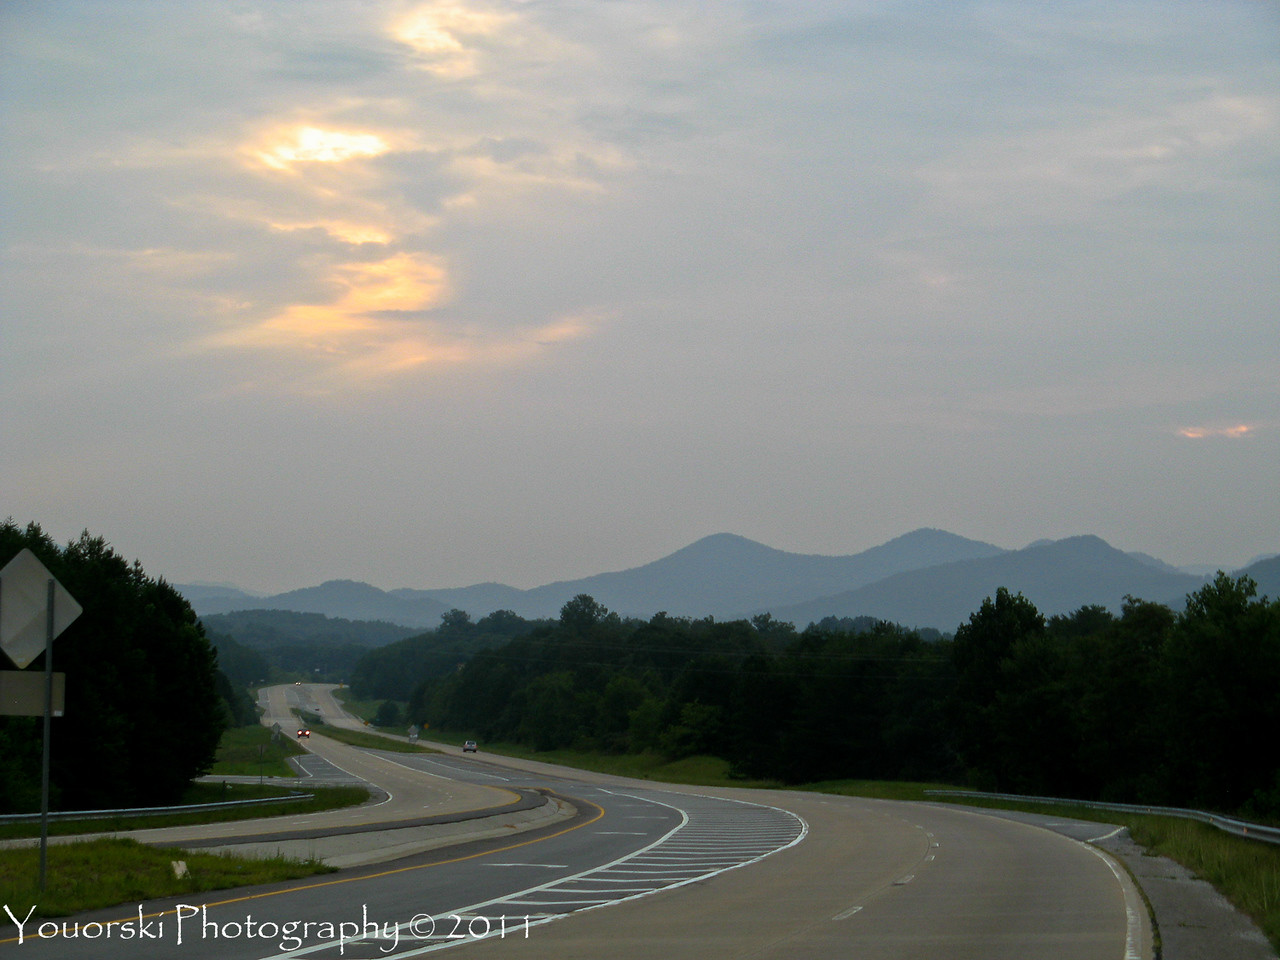 Up in North Georgia. I pulled over on the side of the road and shot this from my SV650 while at the Twisty Sister Rally. 2011.